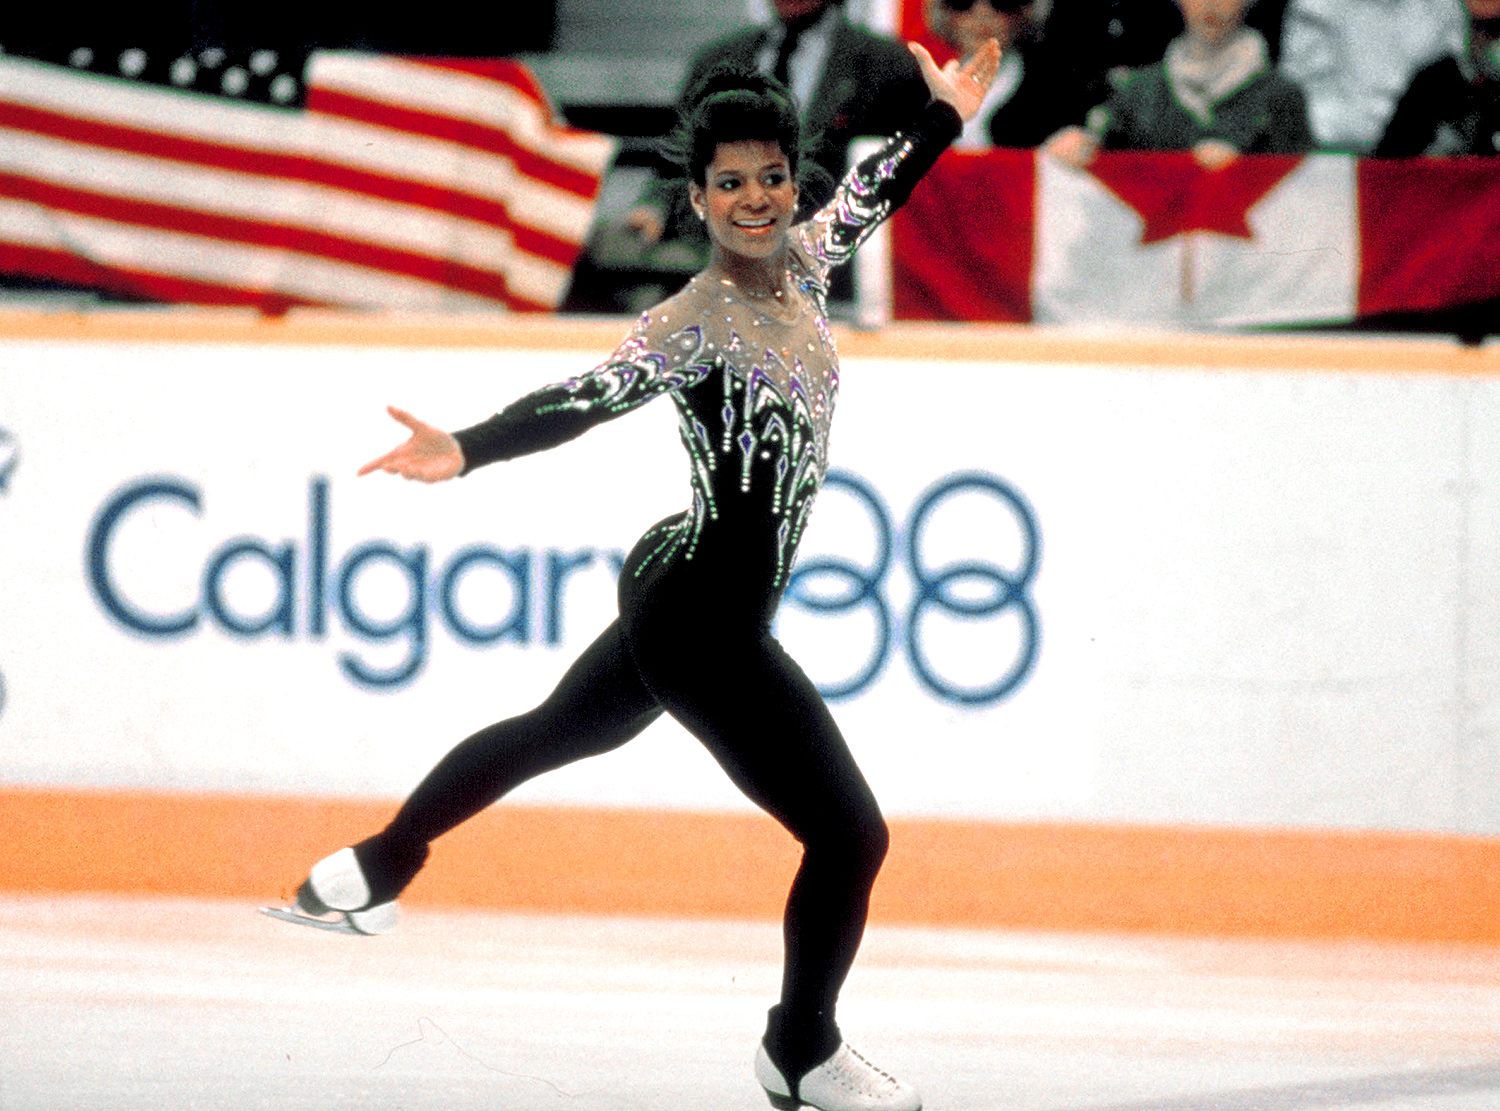 Feb. 8, 1986: Debi Thomas Becomes First Black Woman to Win a National Figure Skating Title